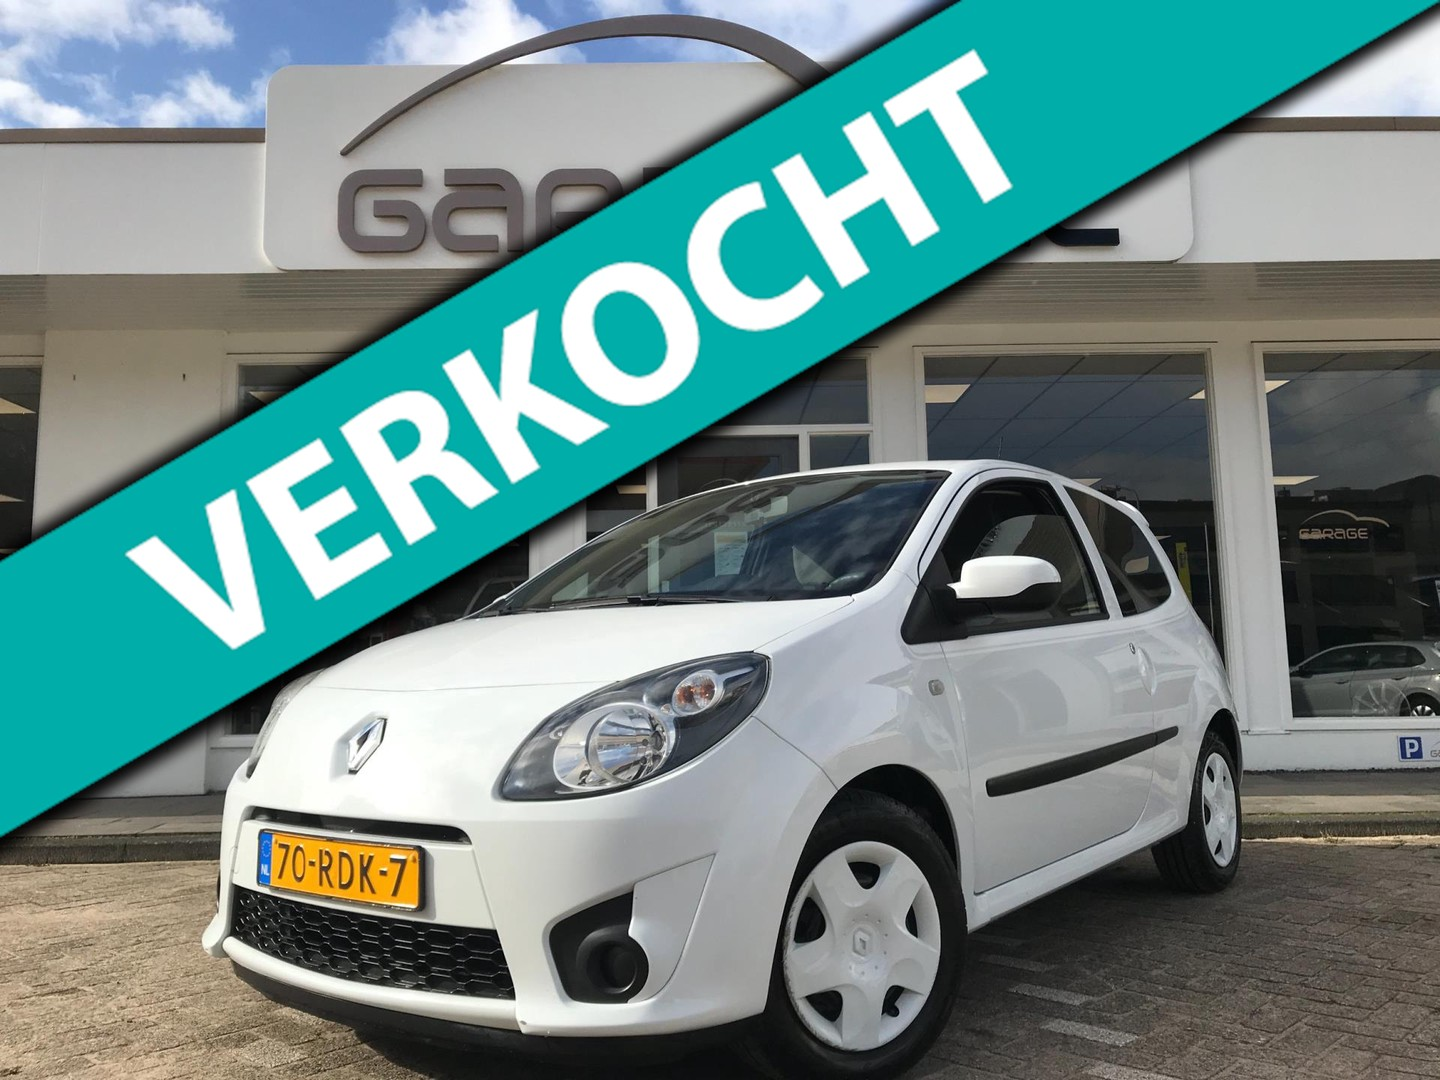 Renault Twingo 1.2-16v collection org.nl